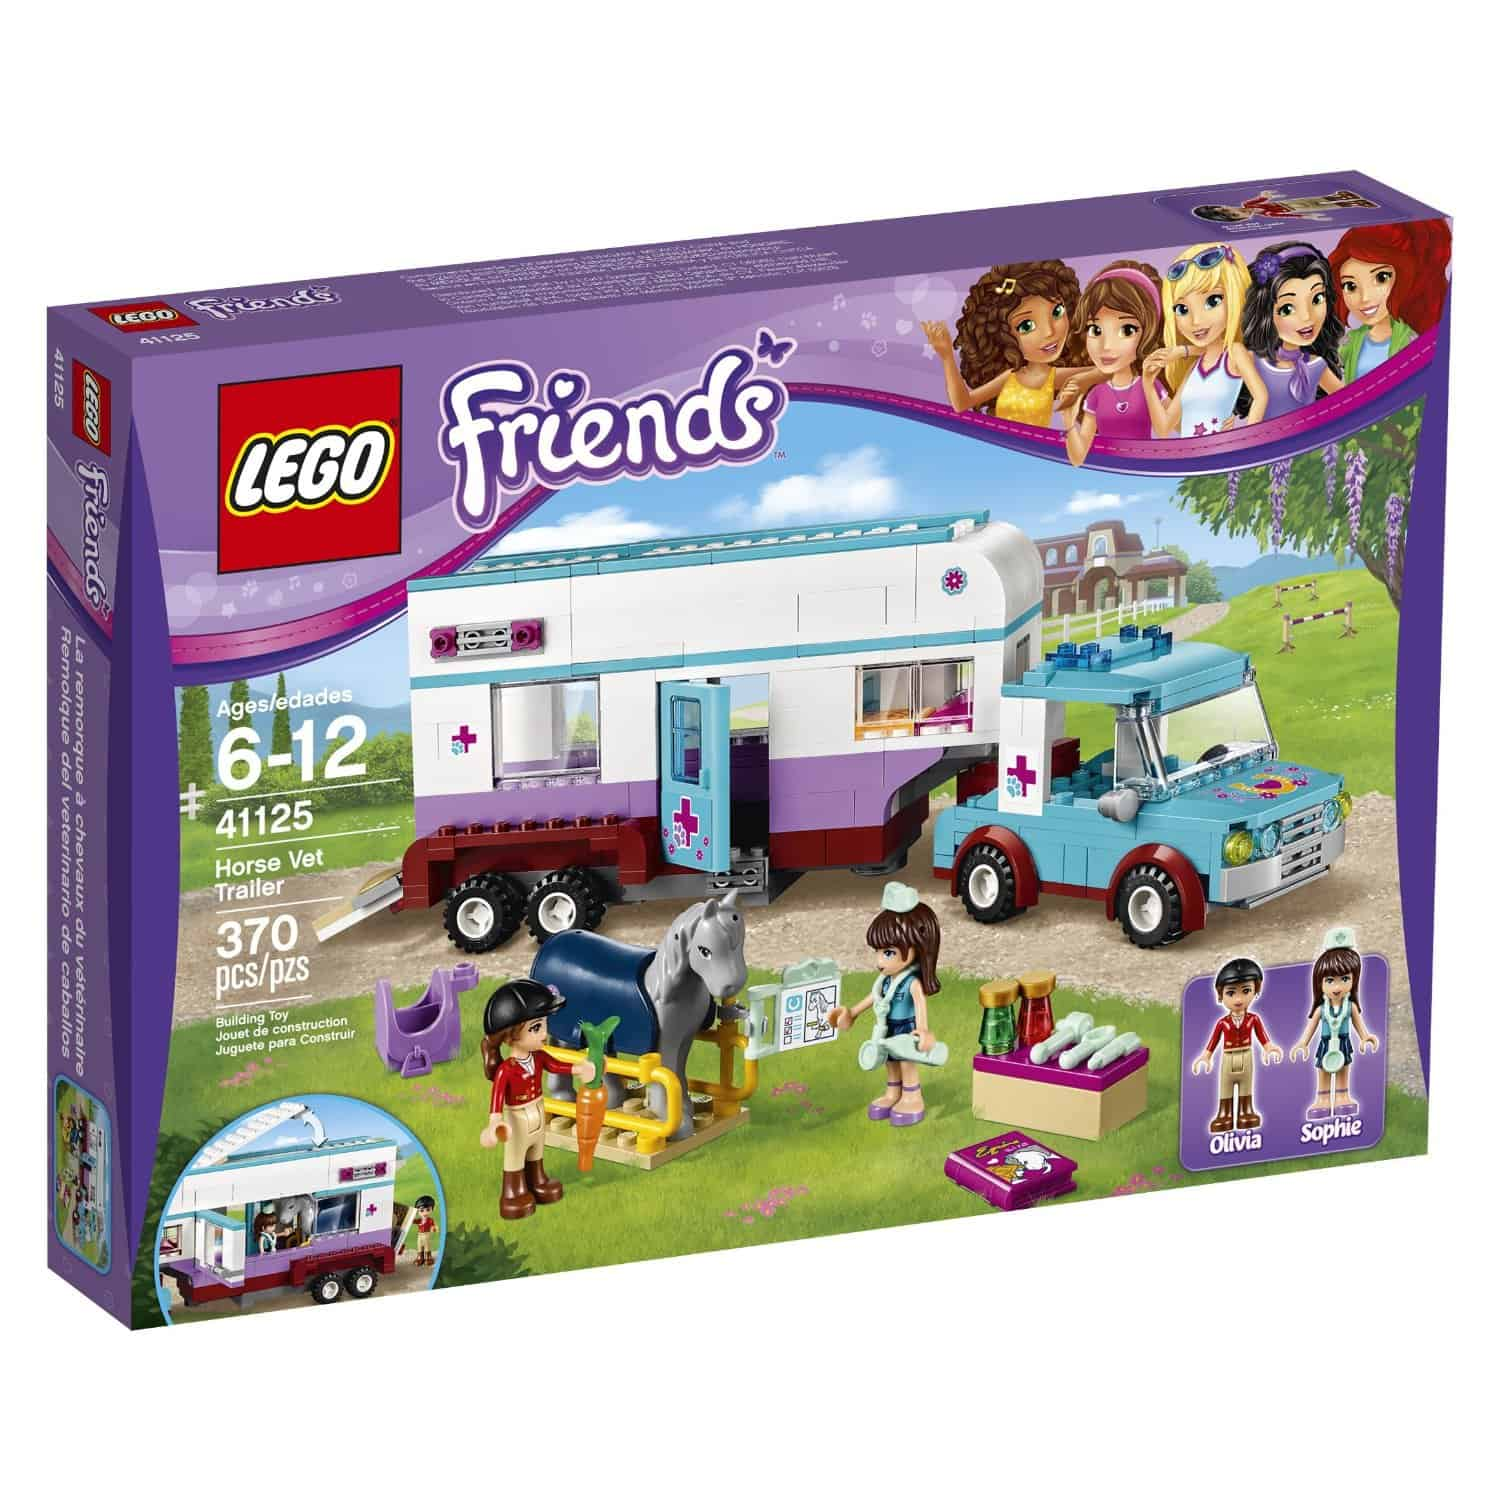 Lego Friends Horse Vet Trailer